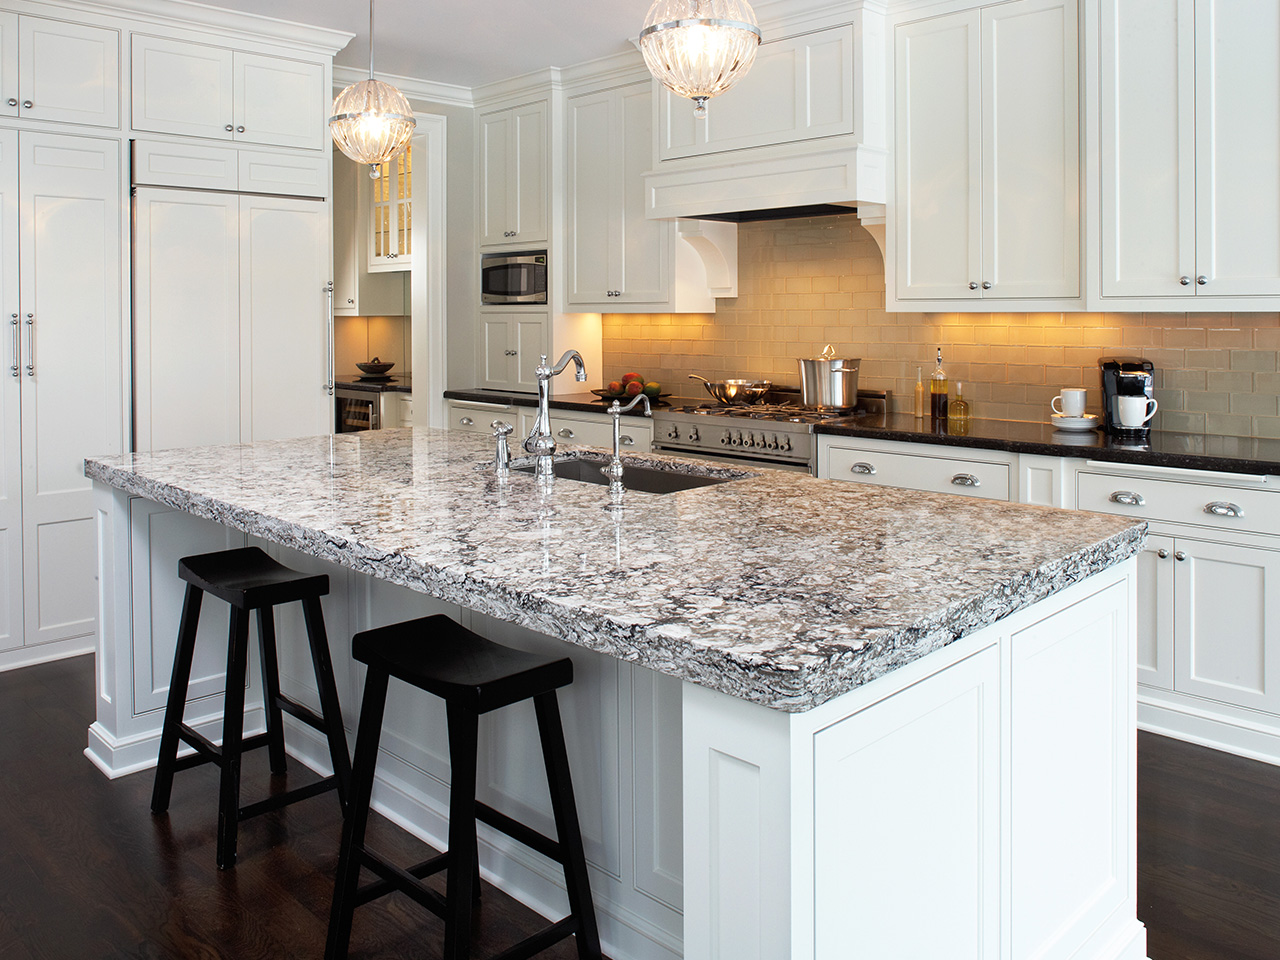 Granite Countertops Heat Damage A Sane Approach To Finding The Perfect Countertop Revuu